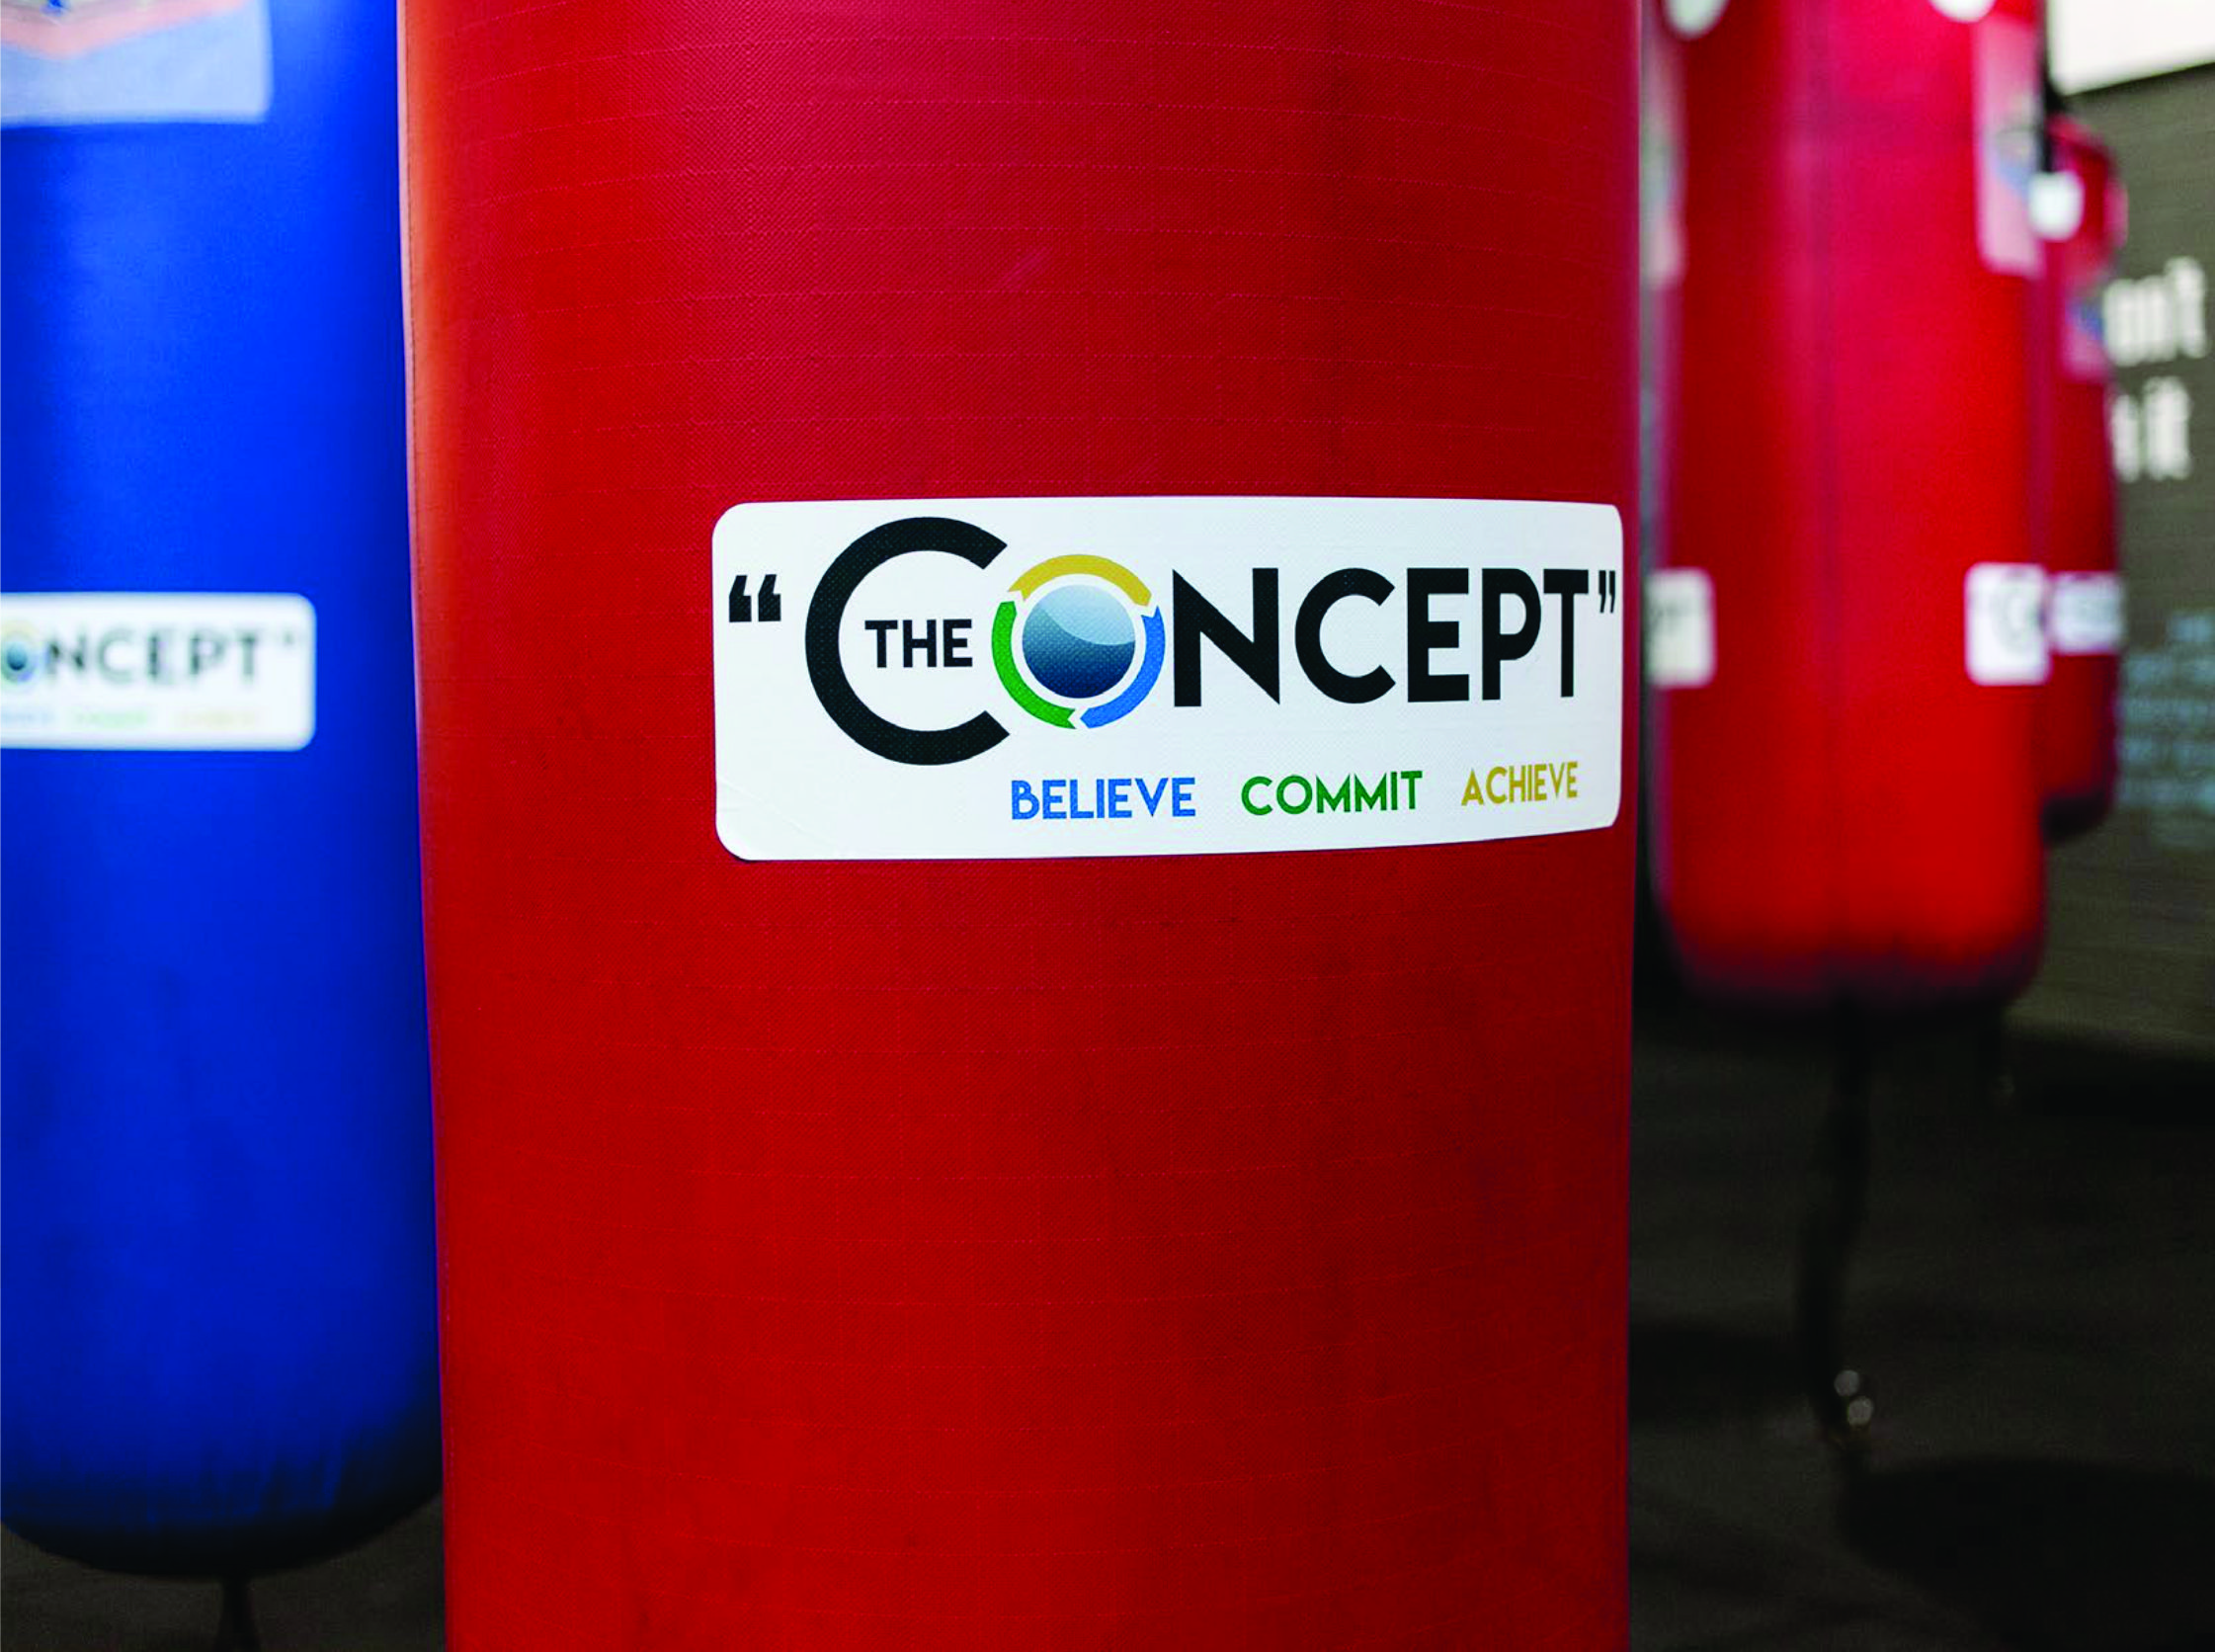 the concept boxing bag decal.jpg